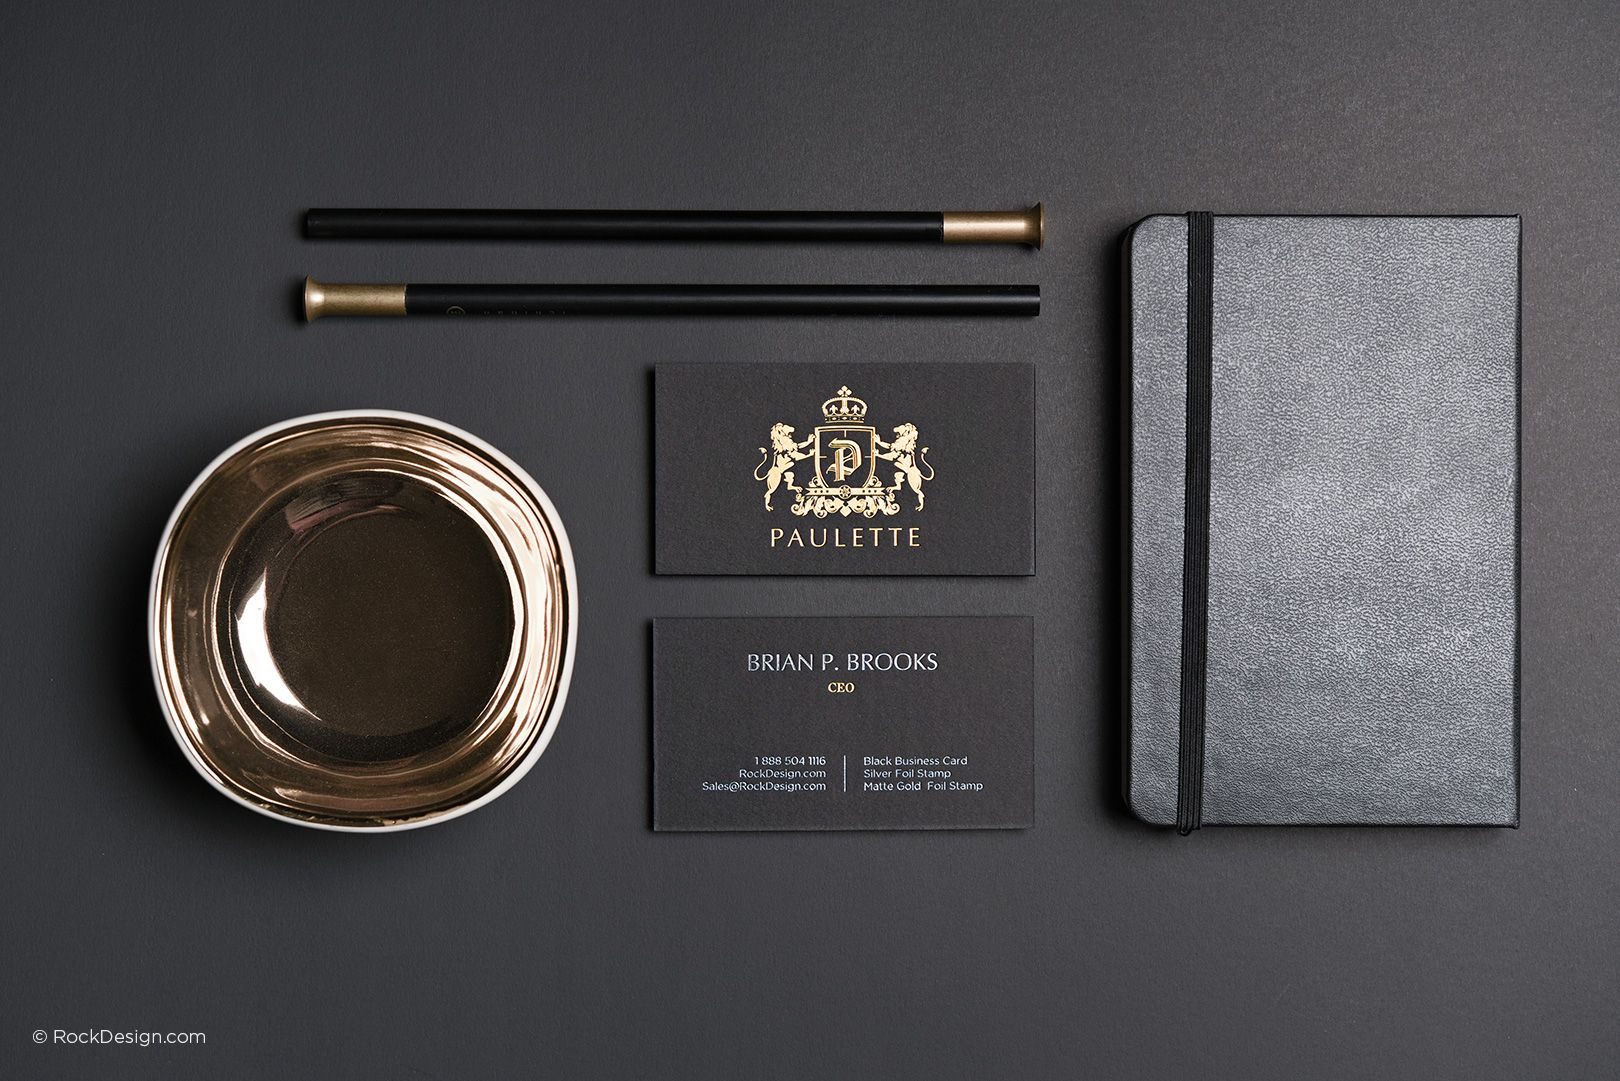 Elegant Classy Business Cards Image collections - Card Design And ...